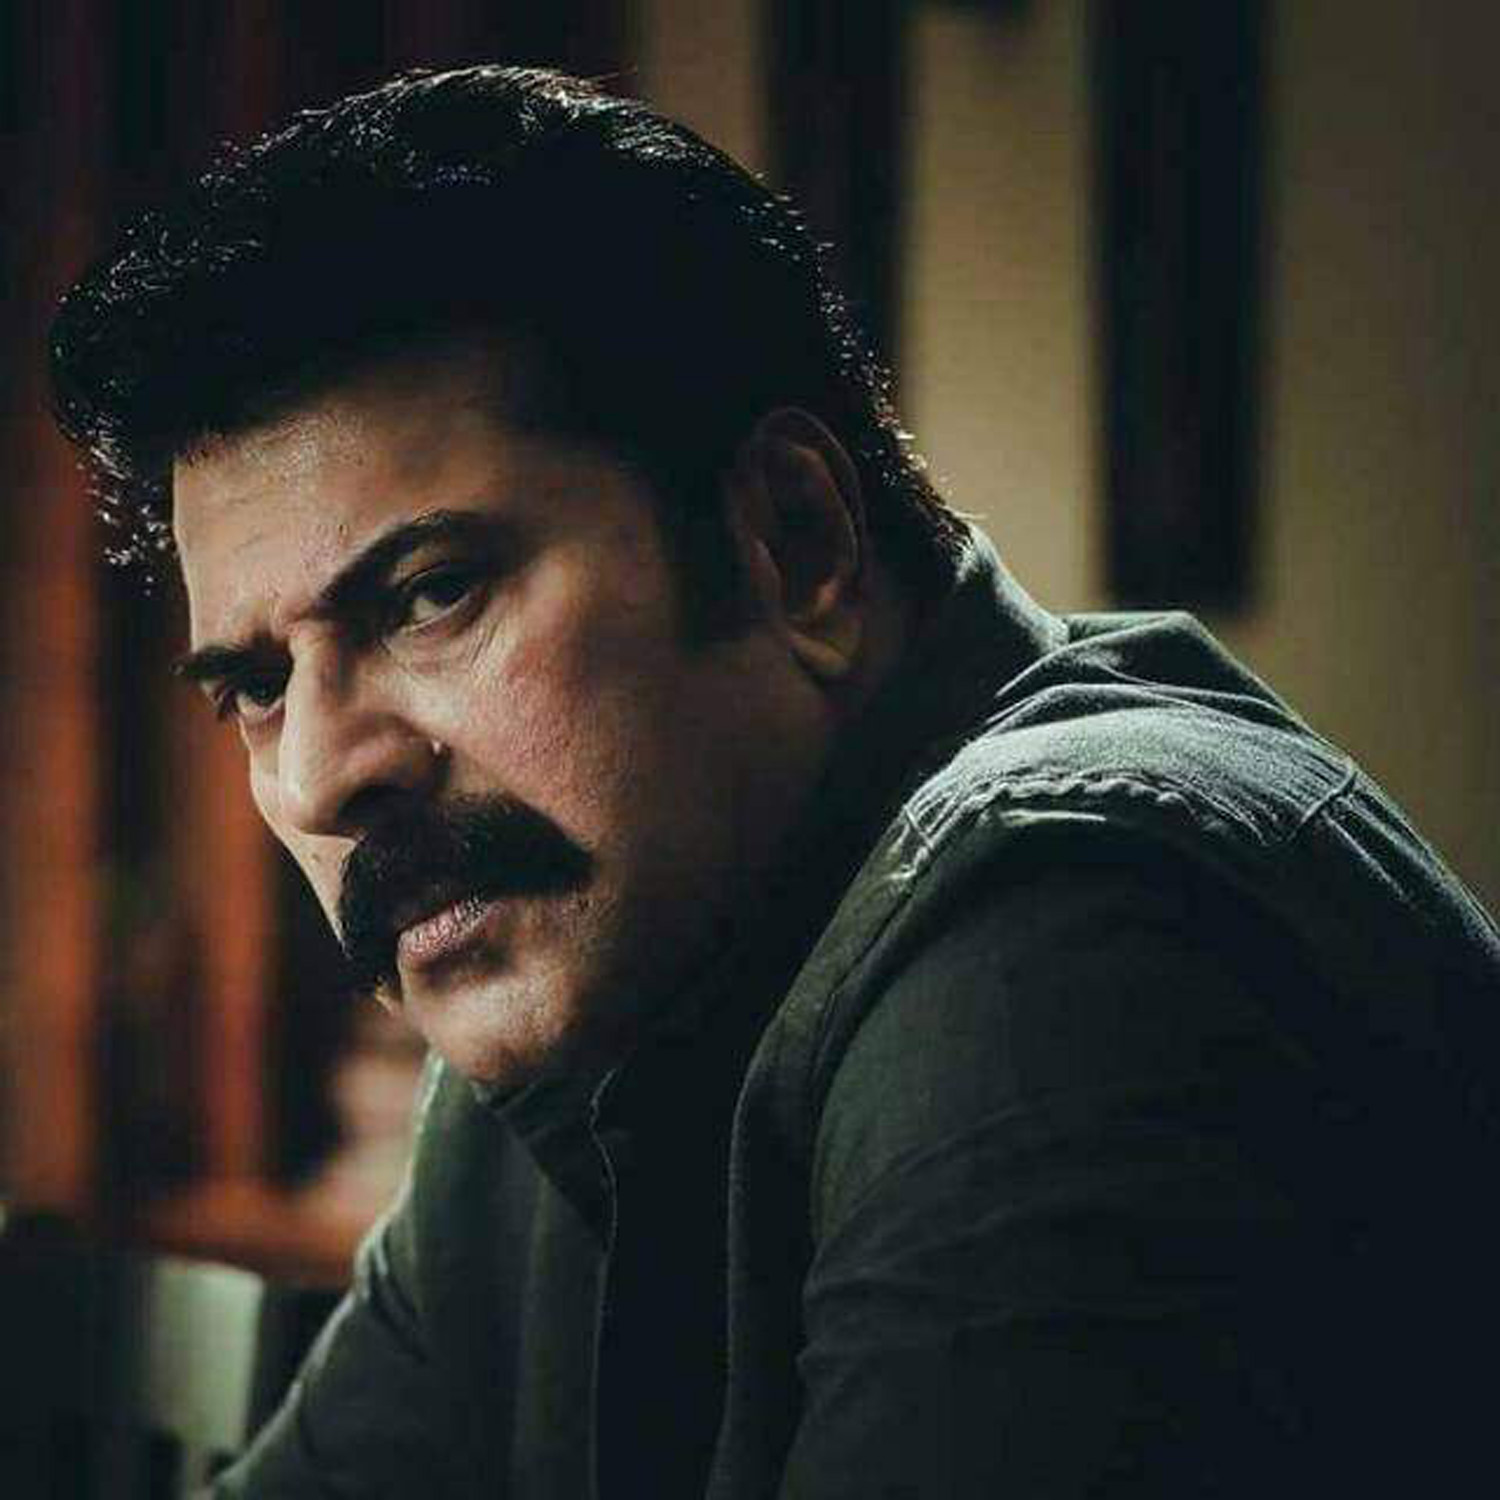 mammootty latest news, mammootty upcoming movies, mammootty in abrahaminte santhathikal, abrahaminte santhathikal latest news, abrahaminte santhathikal movie stills